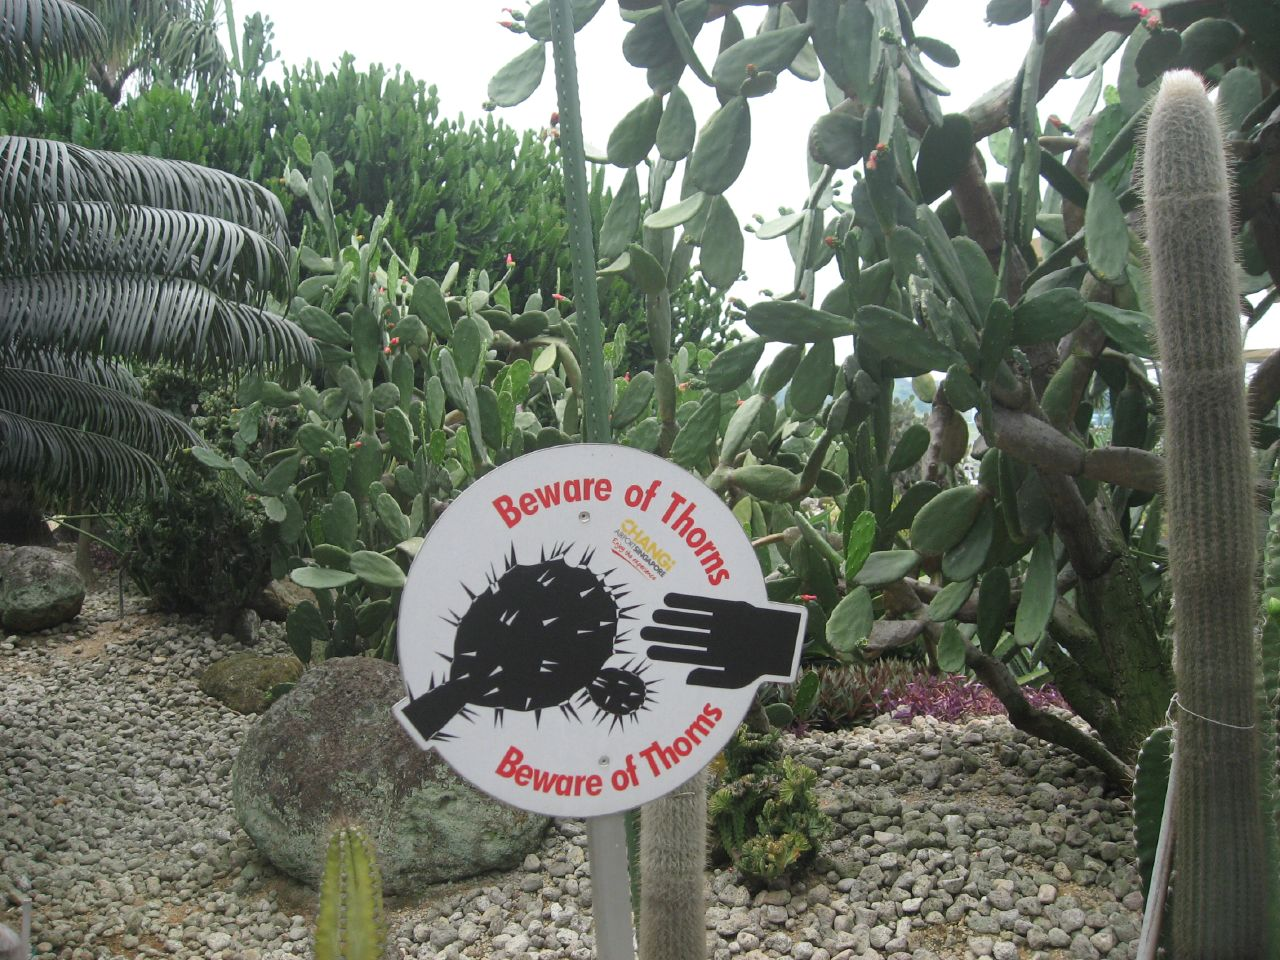 Singapore's airport features its own cactus garden